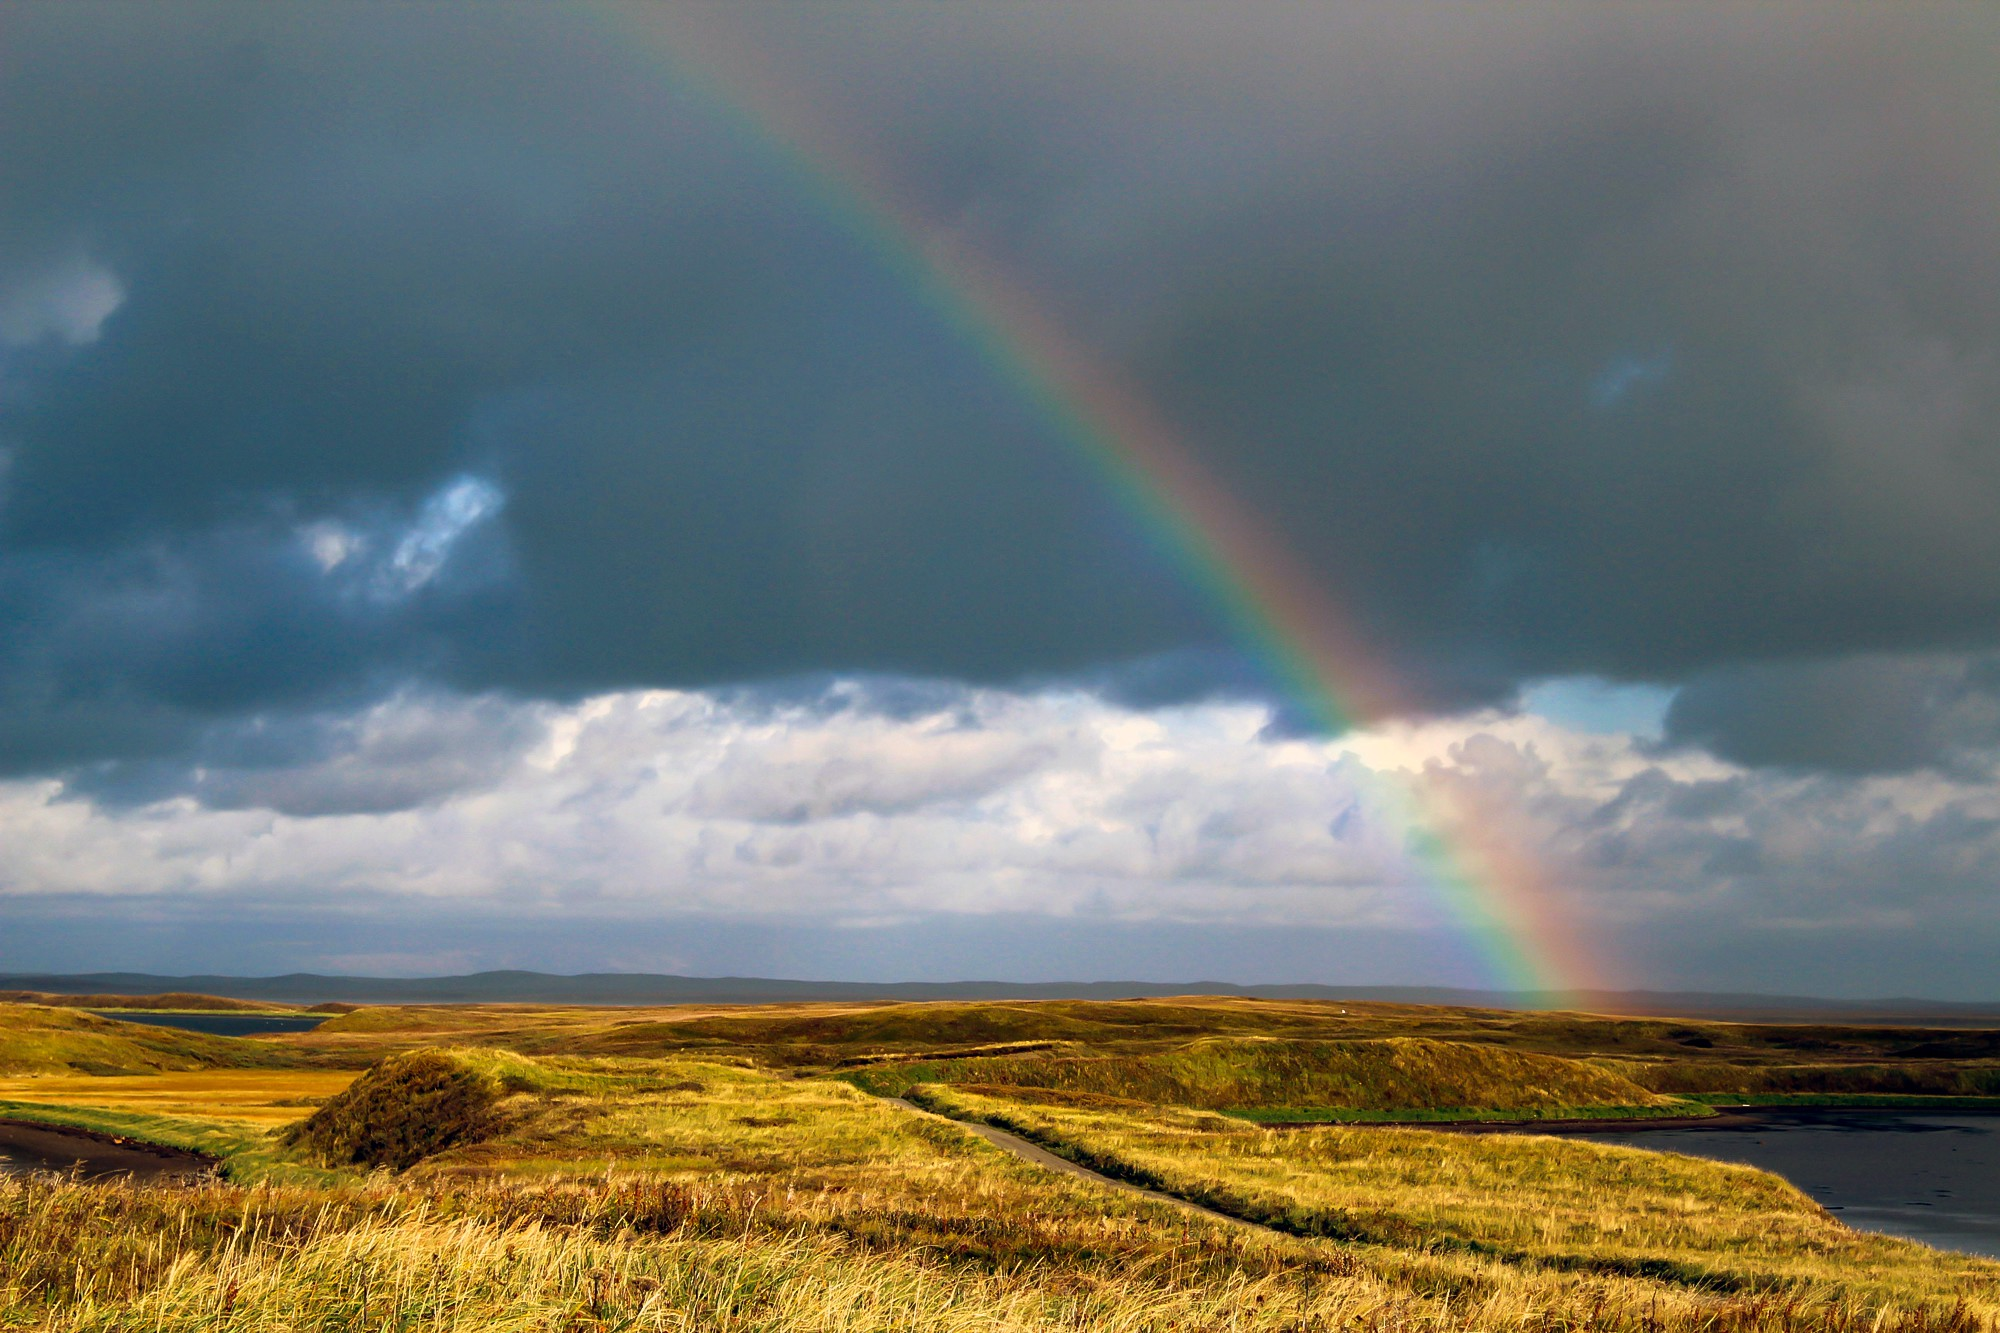 Rainbow over a shoreline and grassland in Izembek National Wildlife Refuge